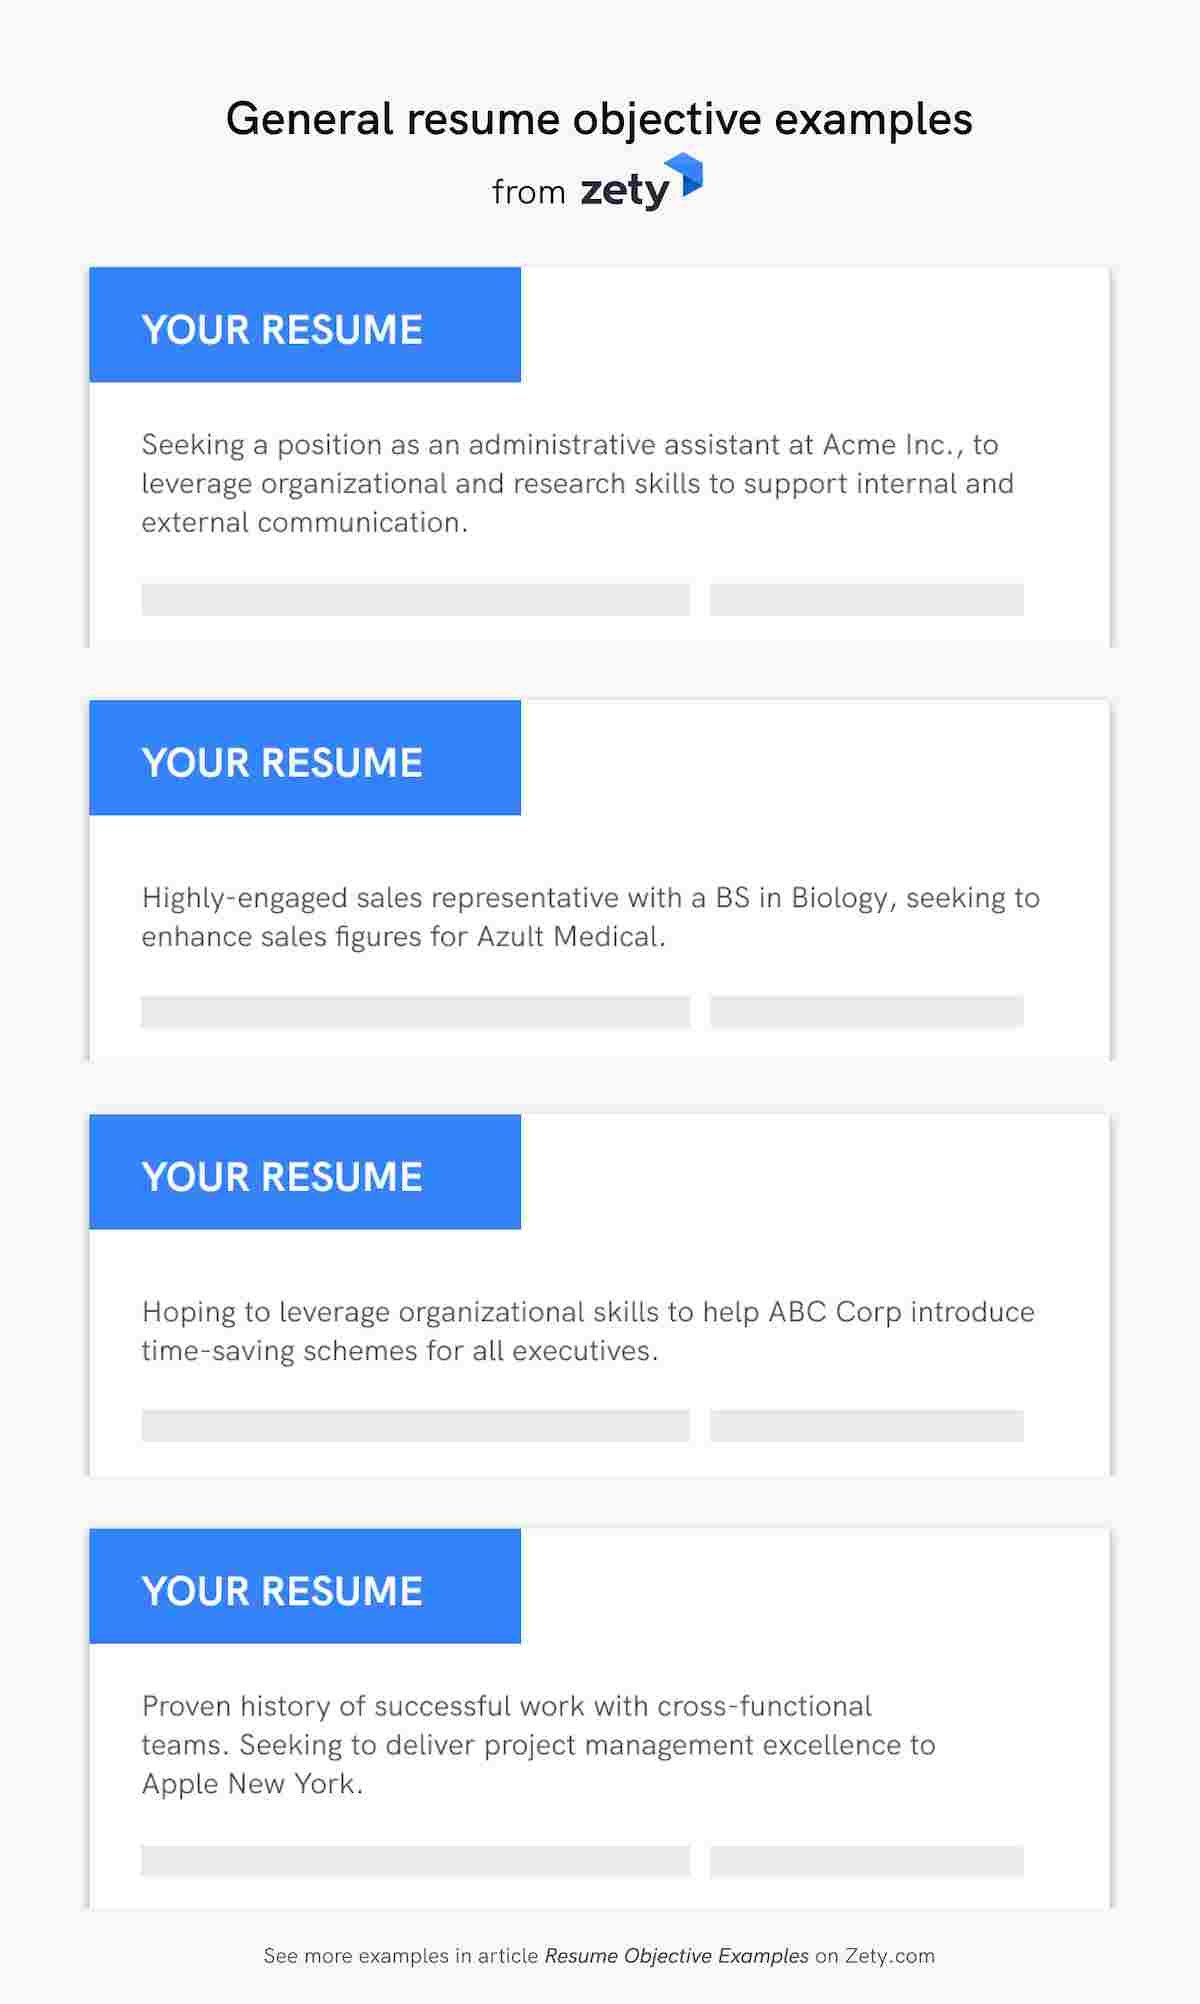 resume objective examples career objectives for all jobs college recruiter general Resume College Recruiter Resume Objective Examples